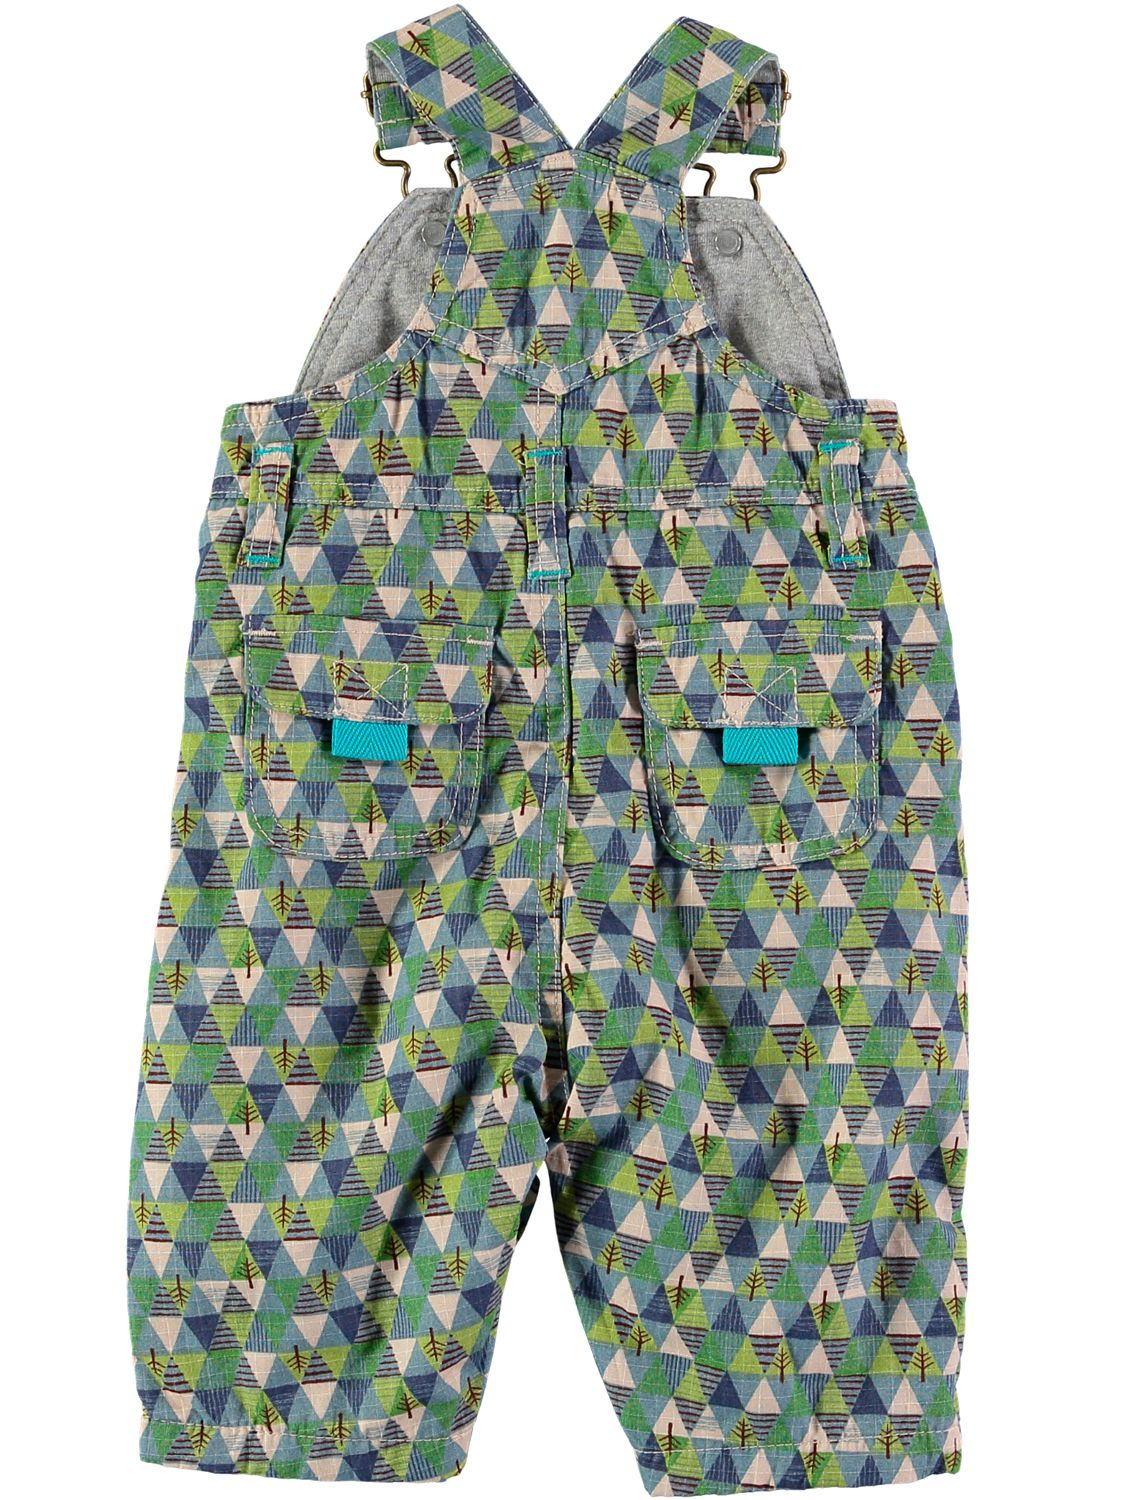 Rockin' Baby Rockin' Baby Boys Tree Print Cotton Overalls, Green